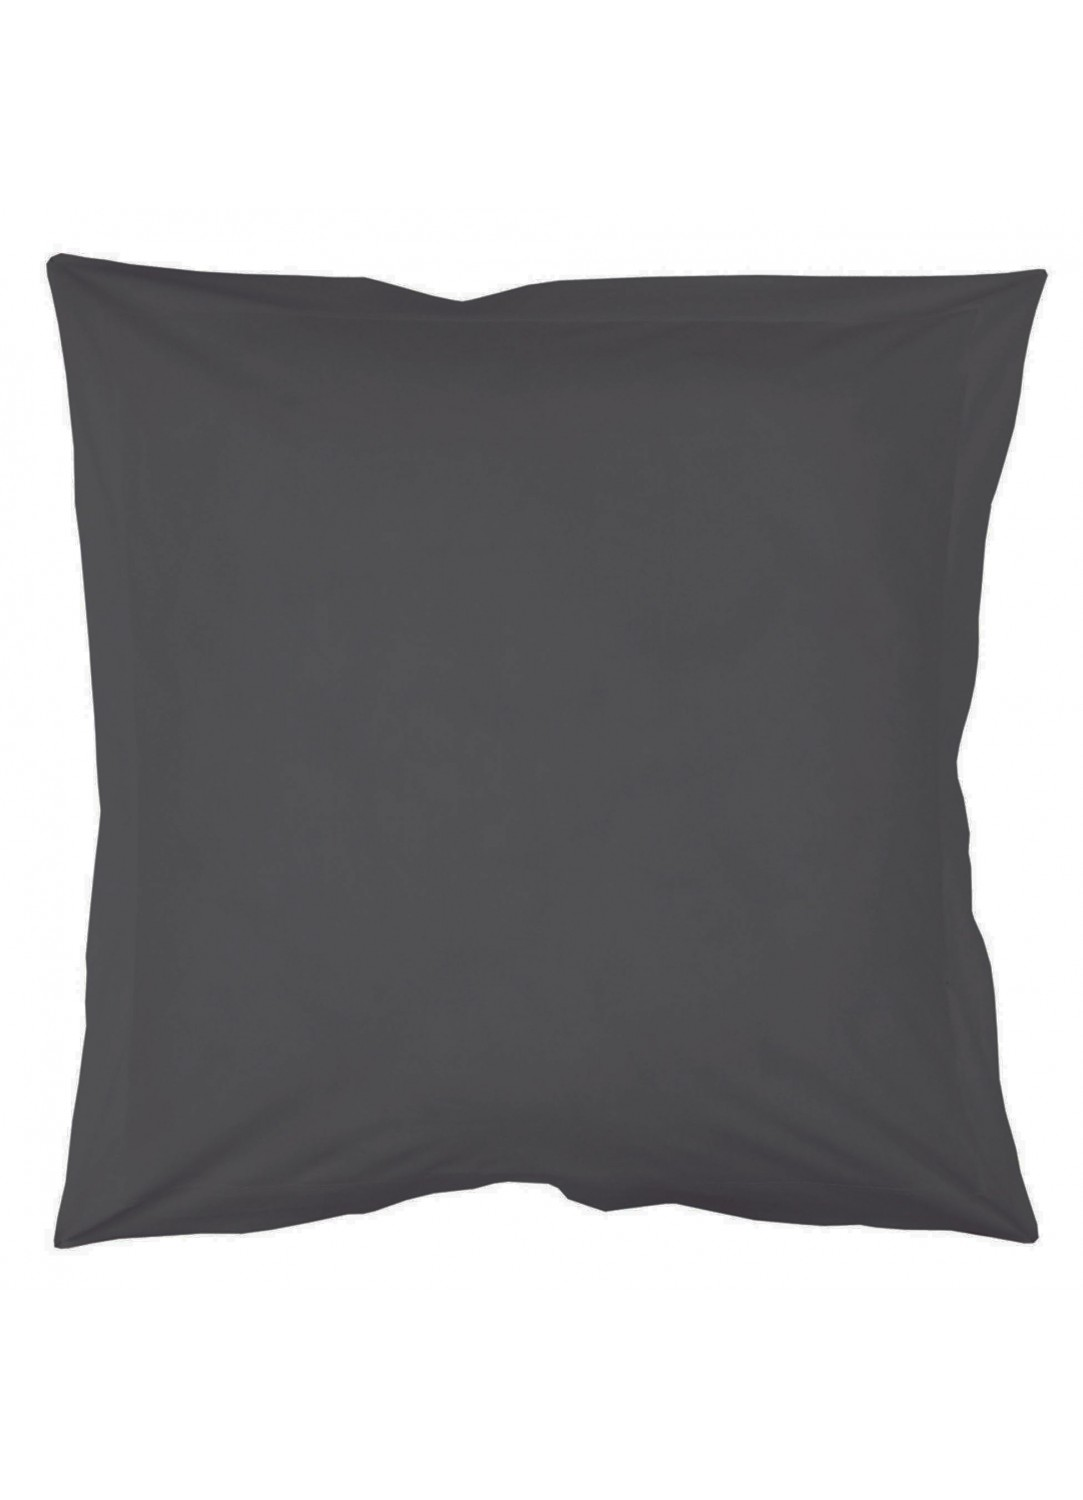 Taie d'oreiller percale 65 x 65 cm unie (Anthracite)